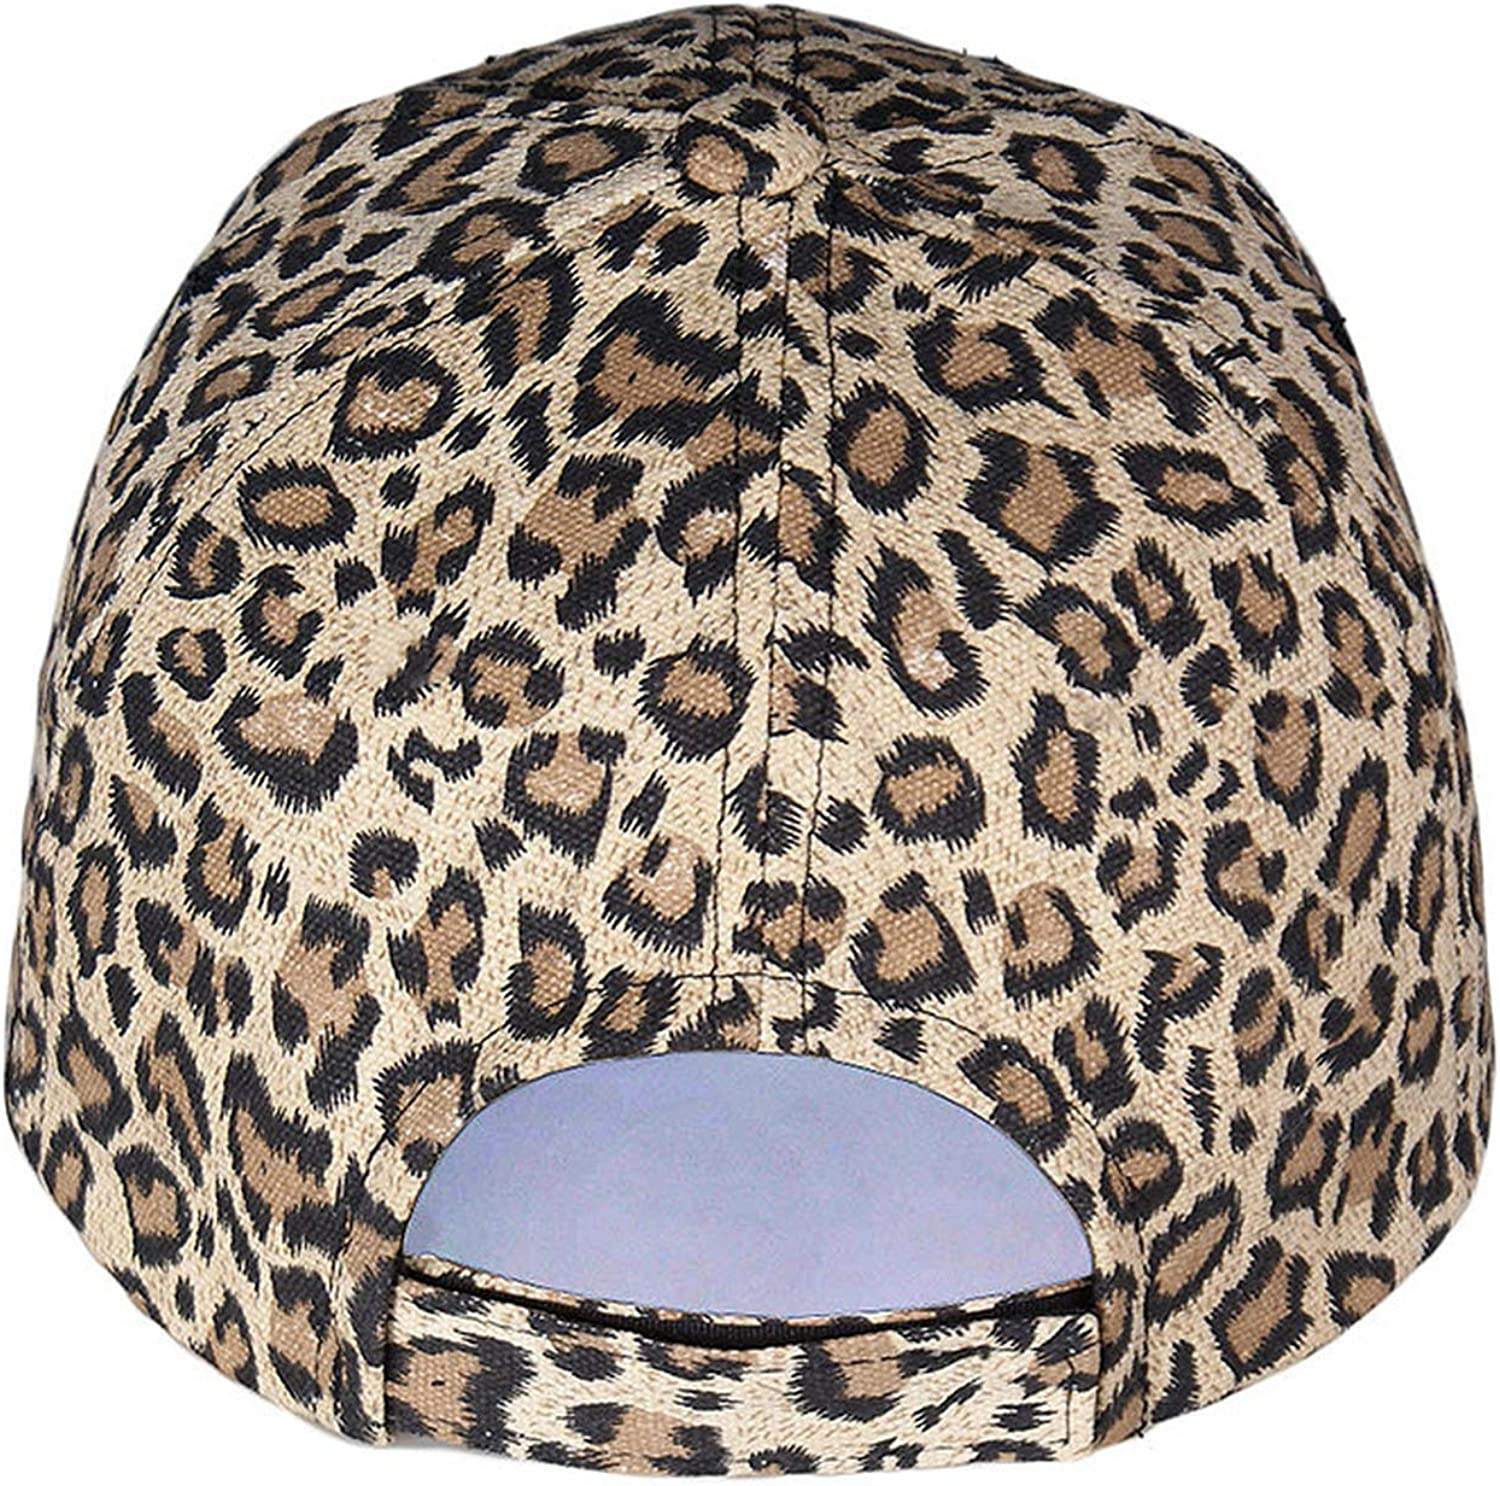 New Womens Baseball Hats Leopard Print Cap Females Outside Visor Sun Cap Fashion Accessories Casquettes